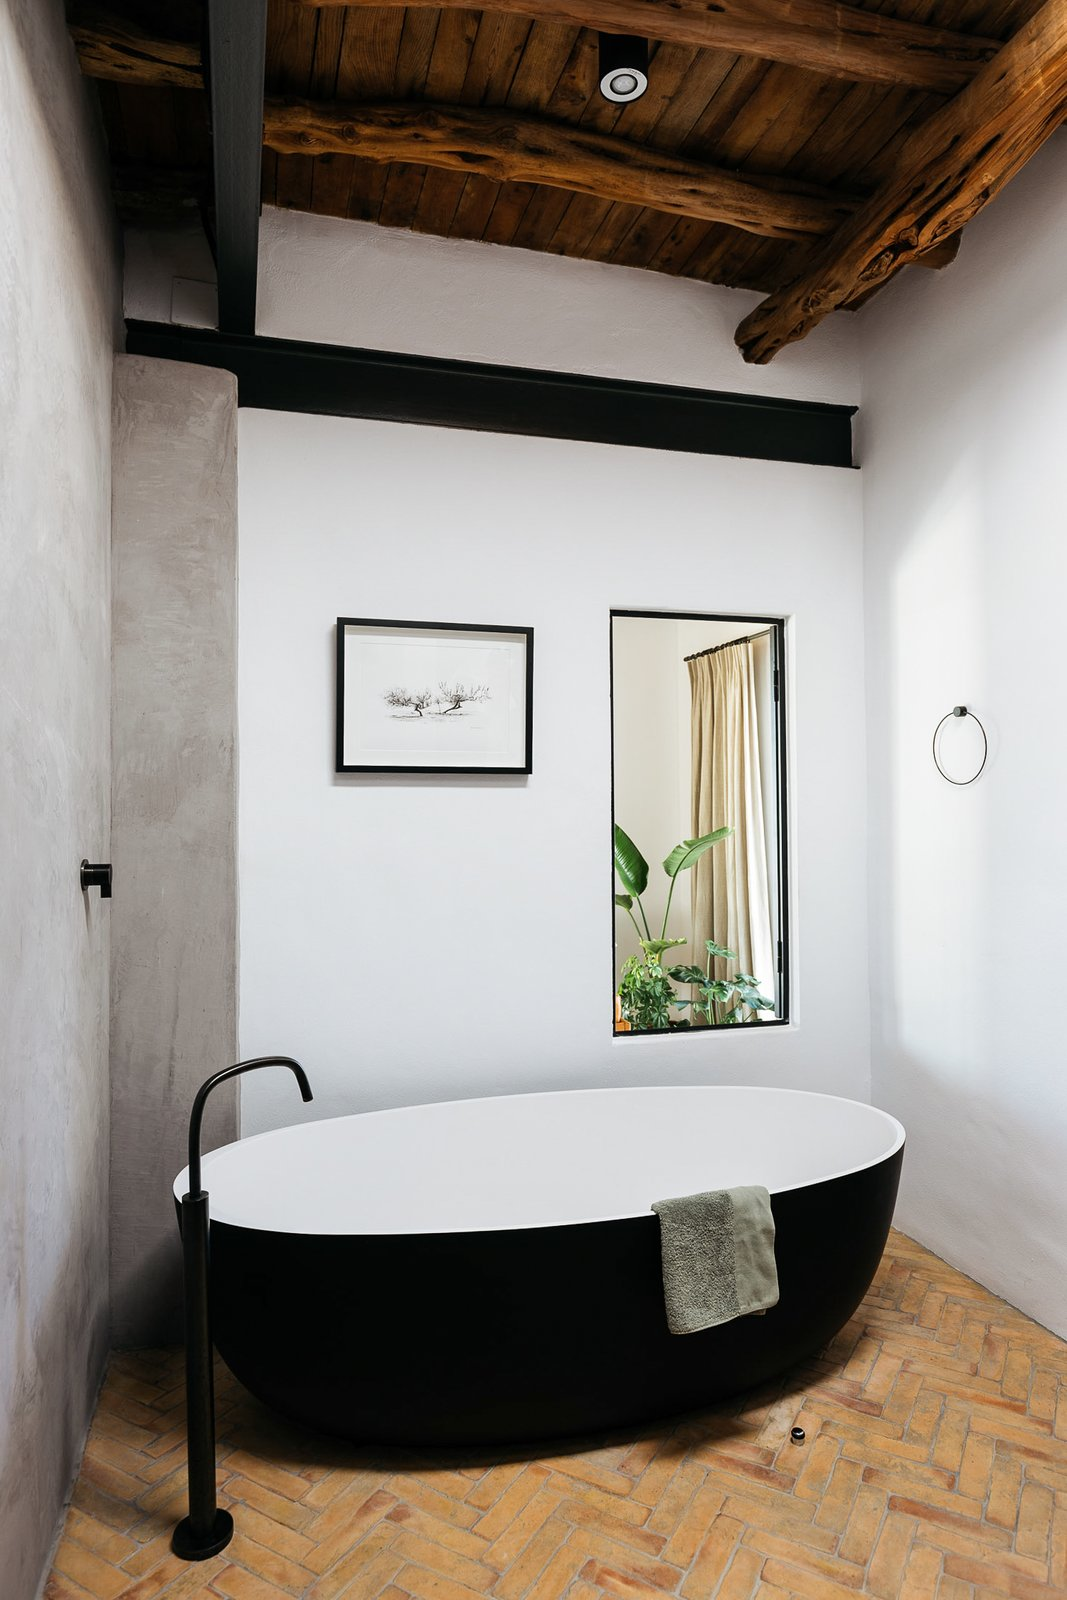 Bath Room, Freestanding Tub, Ceiling Lighting, Stone Slab Wall, Open Shower, and Ceramic Tile Floor  Photos from The Ibiza Campo Loft